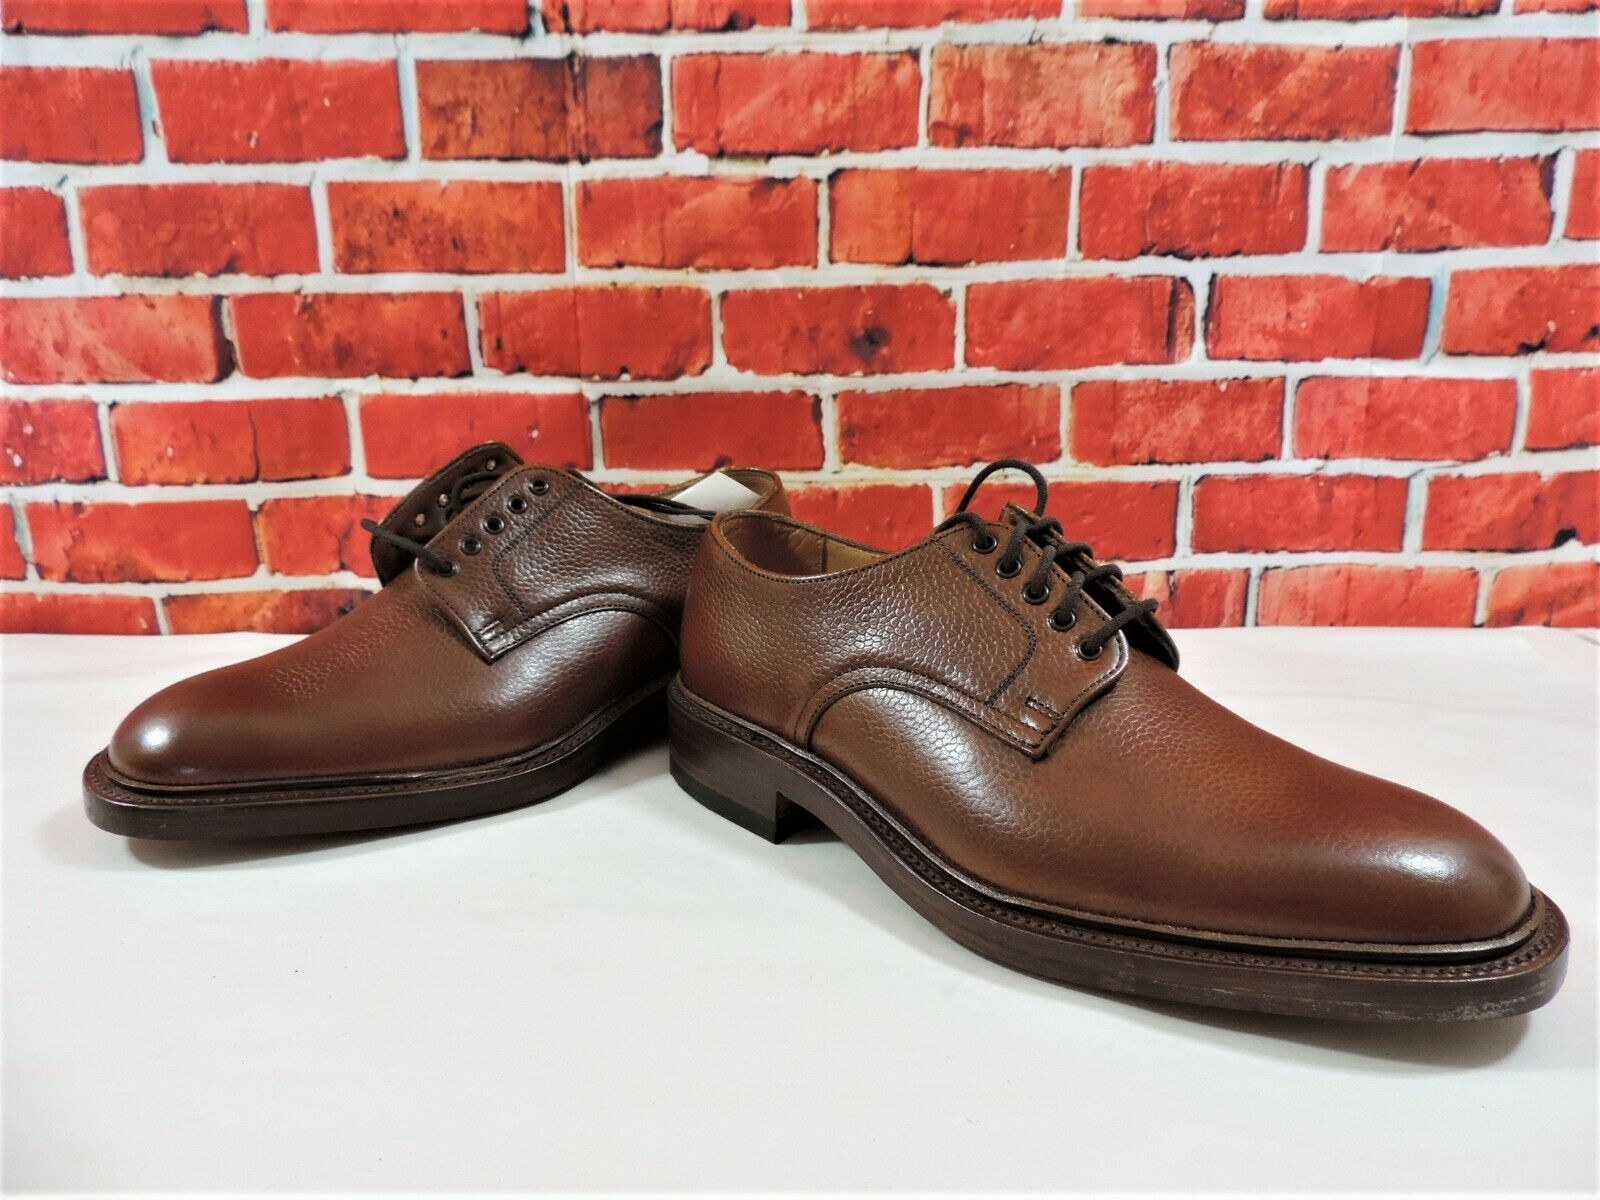 New Loake   Goodwood braun Tan Full Grain Calf Country UK 6 F US 7 EU 40